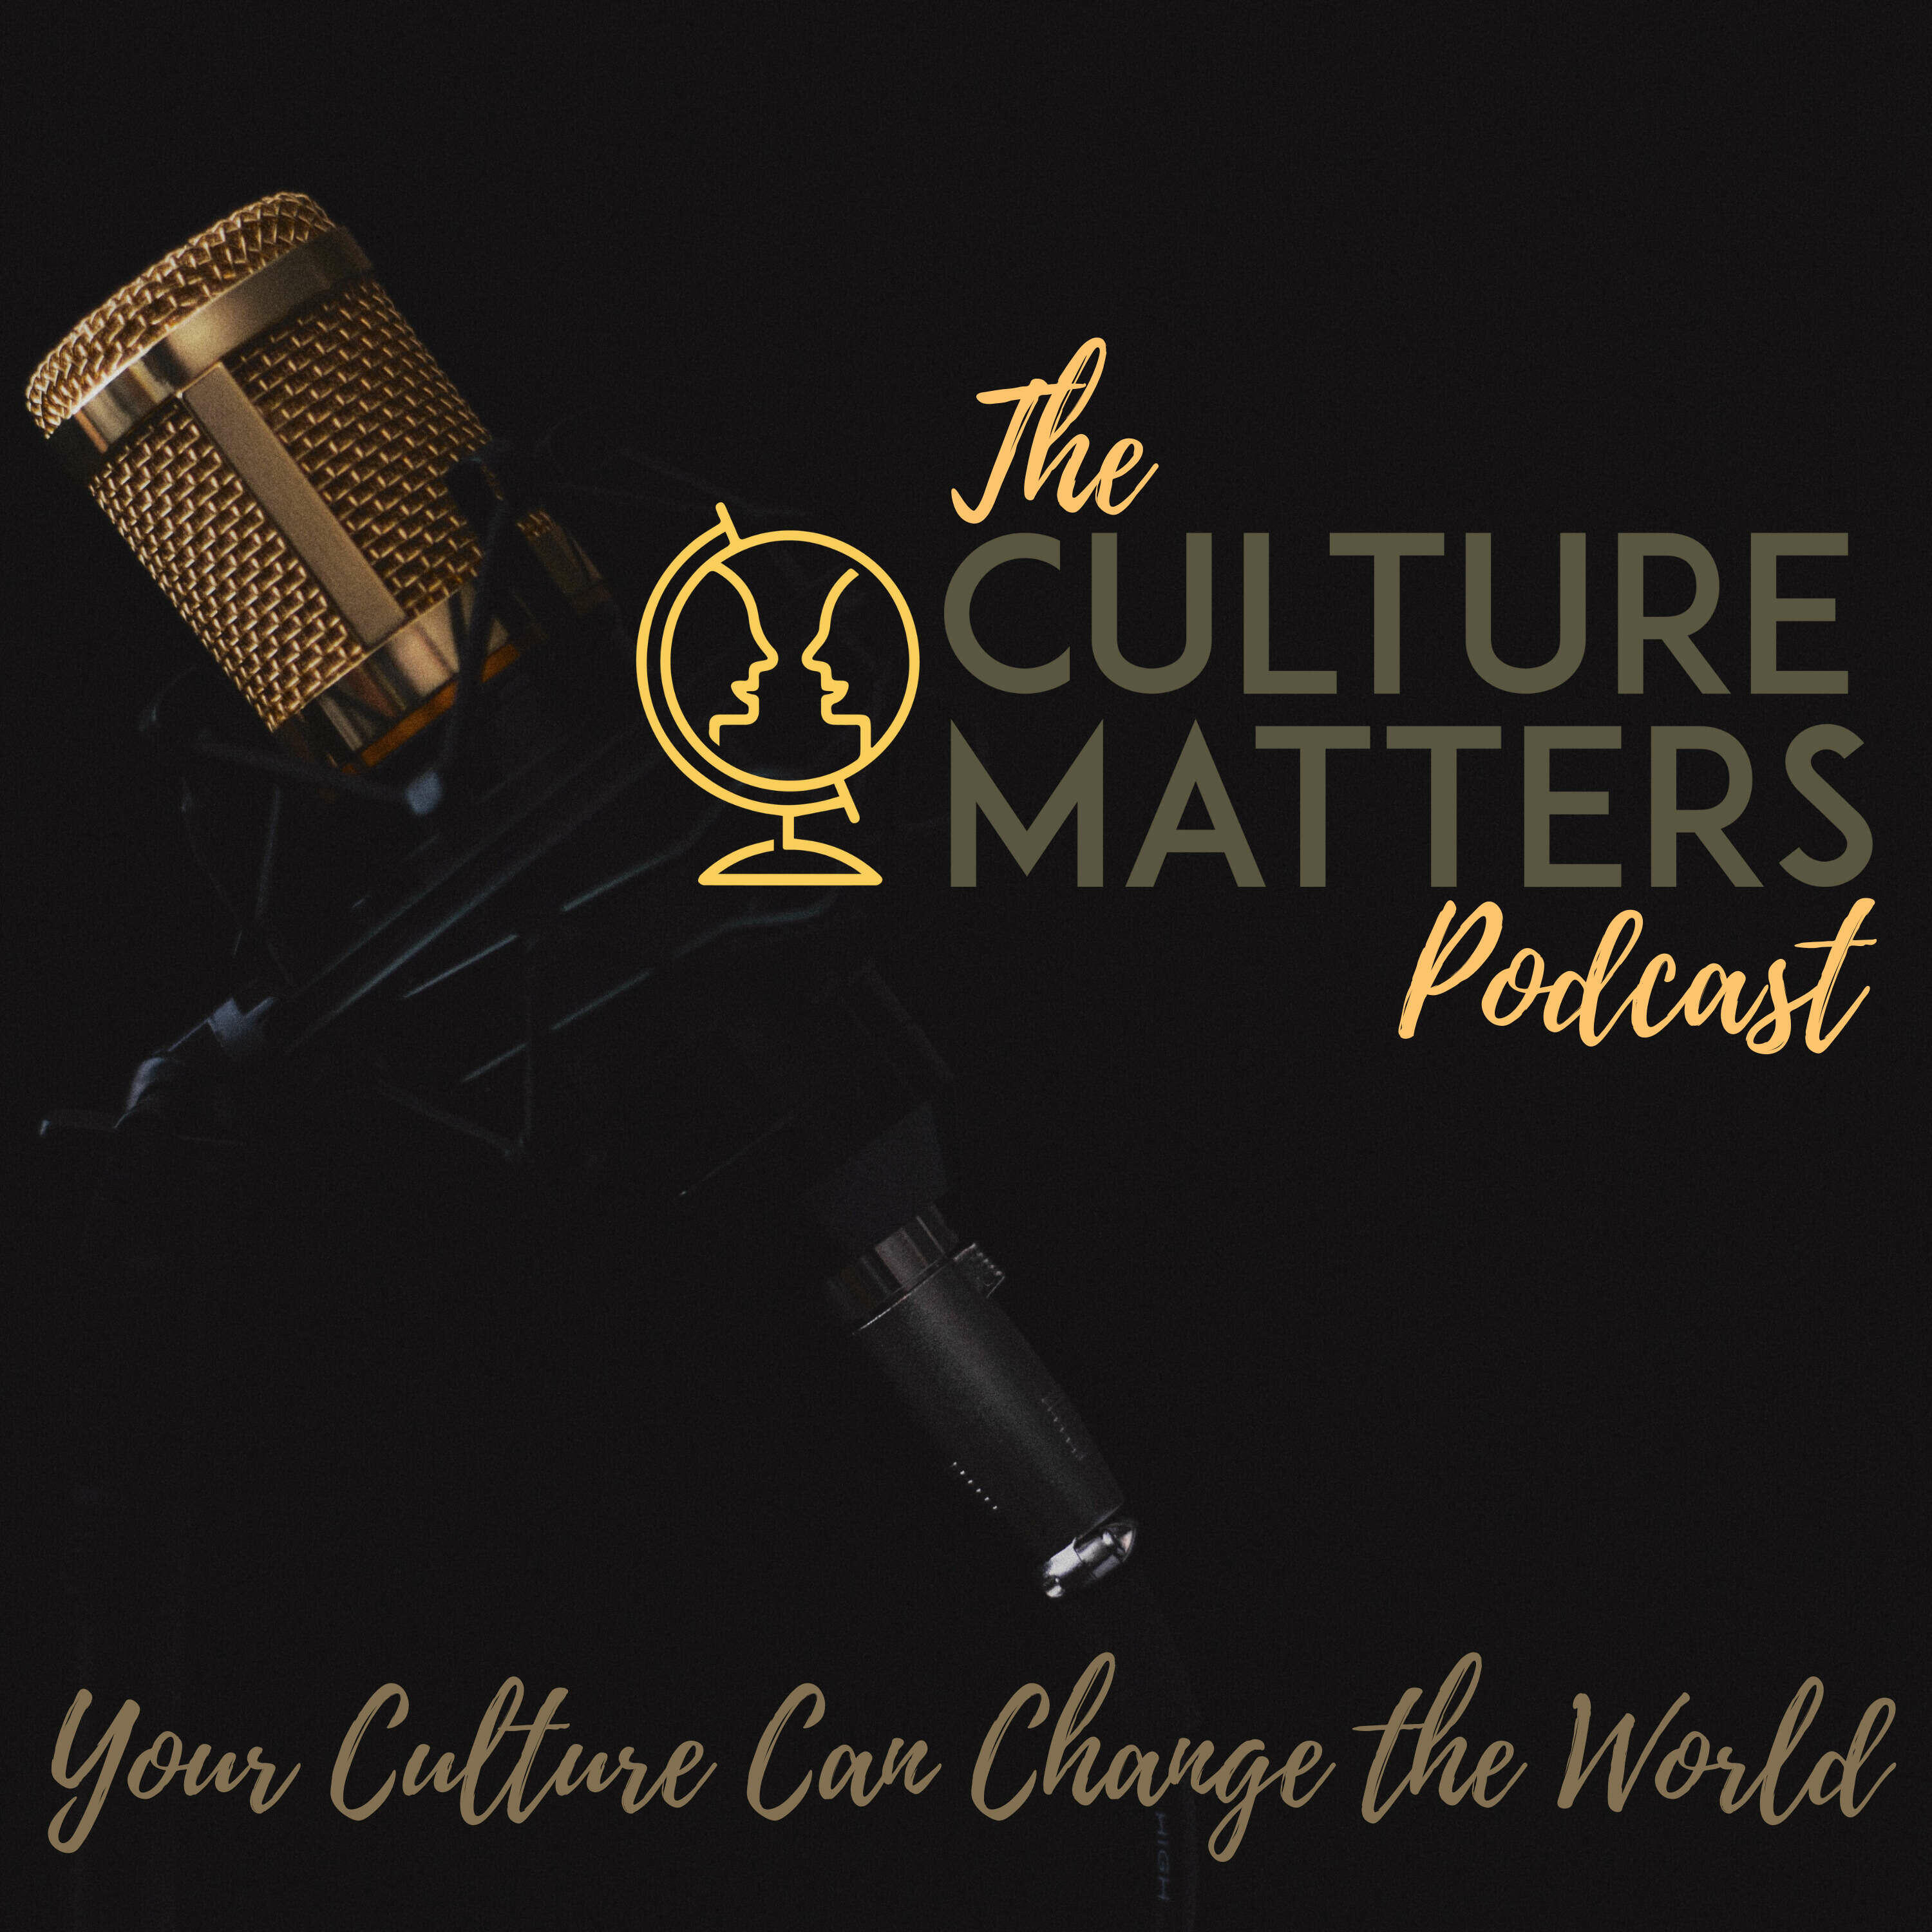 The Culture Matters Podcast